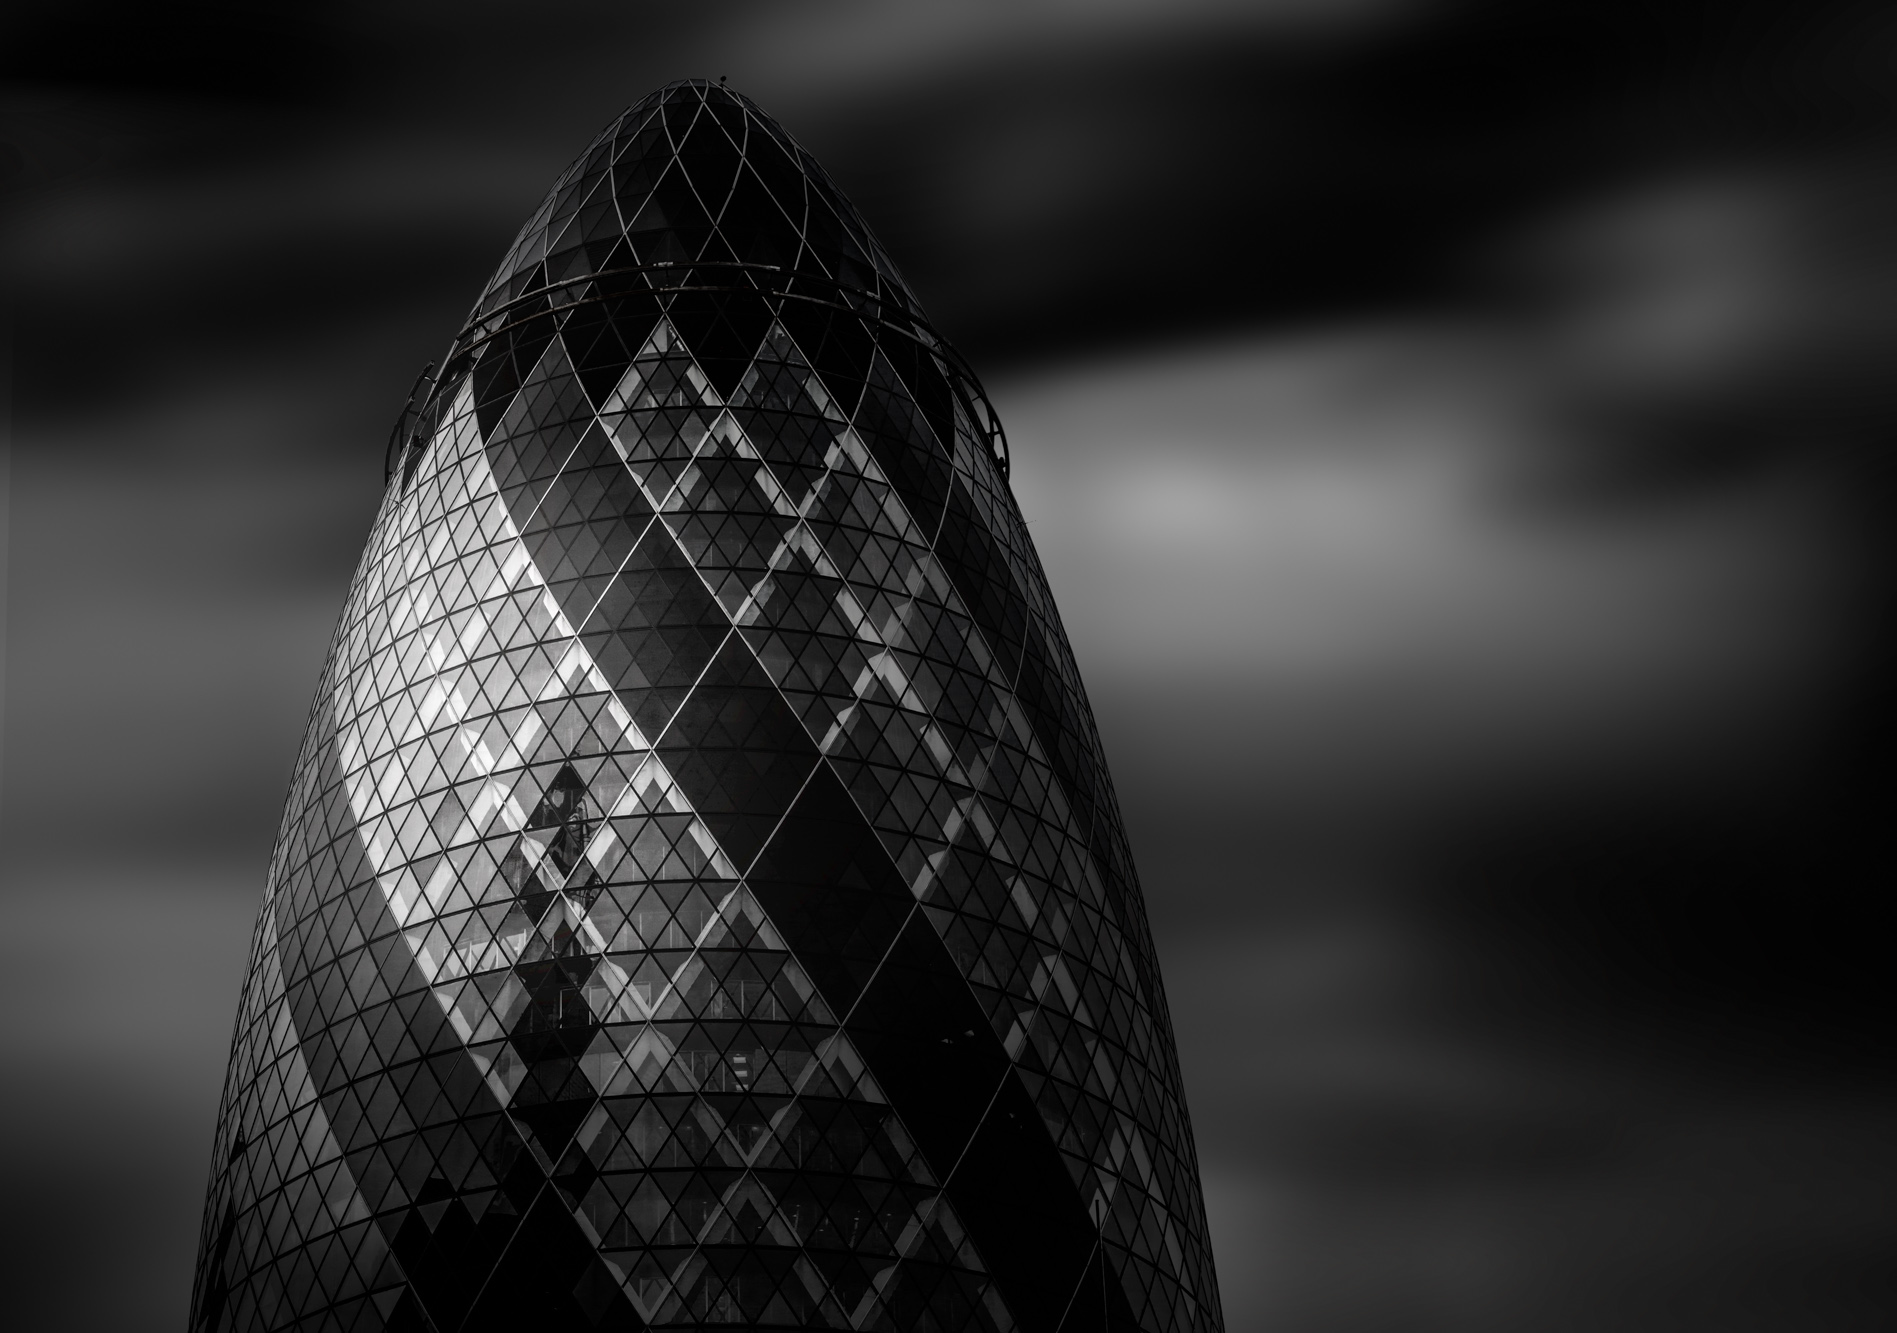 antonyz long exposure architecture photograph of the gherkin st marys axe london modern office building